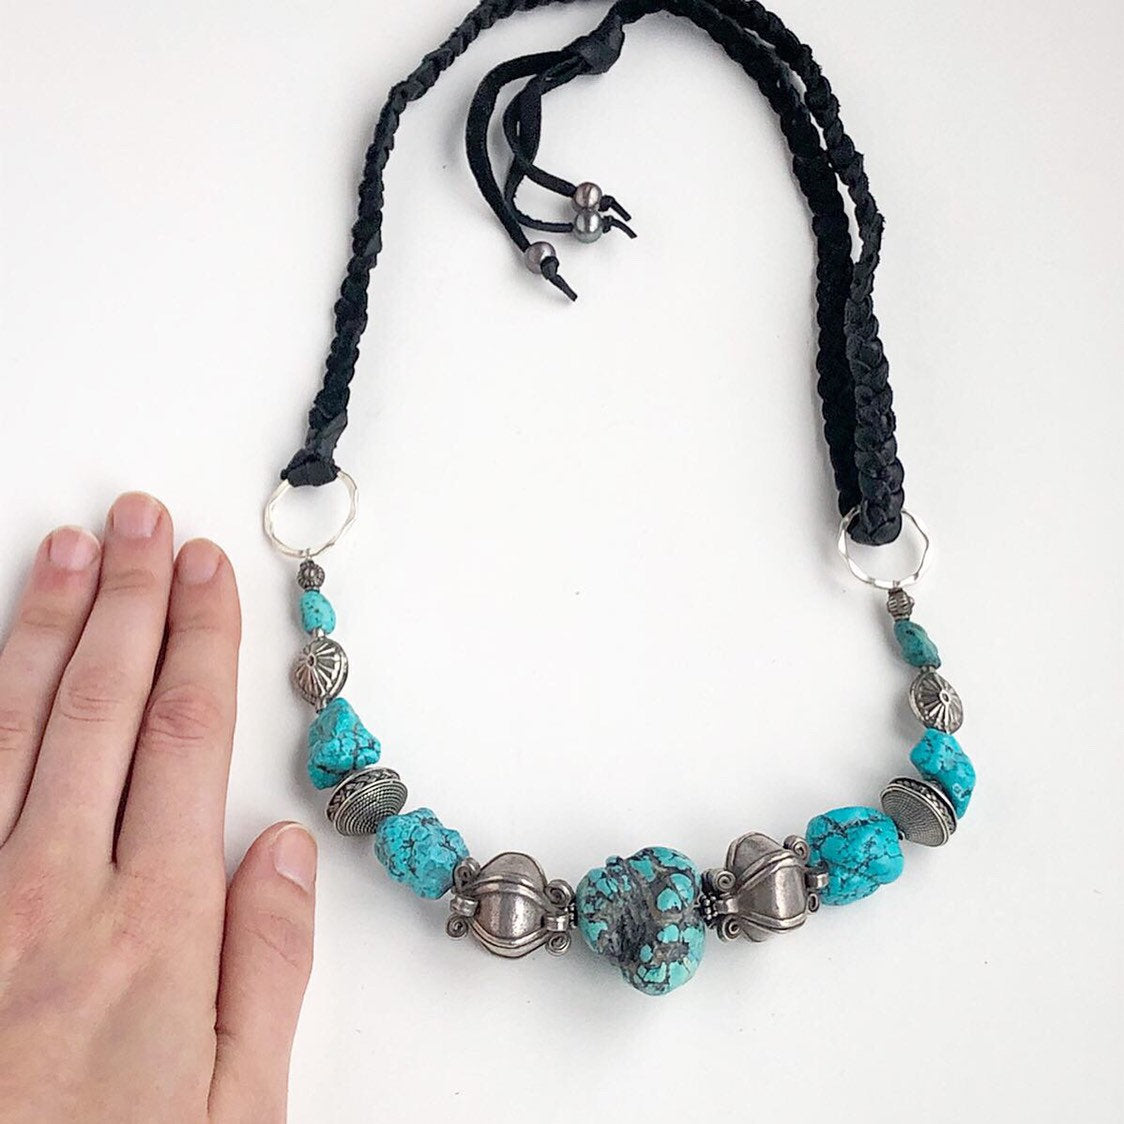 Chunky Turquoise Necklace / Sterling Silver / Black Deerskin Leather / Fringe Black Pearls / Genuine Turquoise Beaded Necklace Boho Vintage